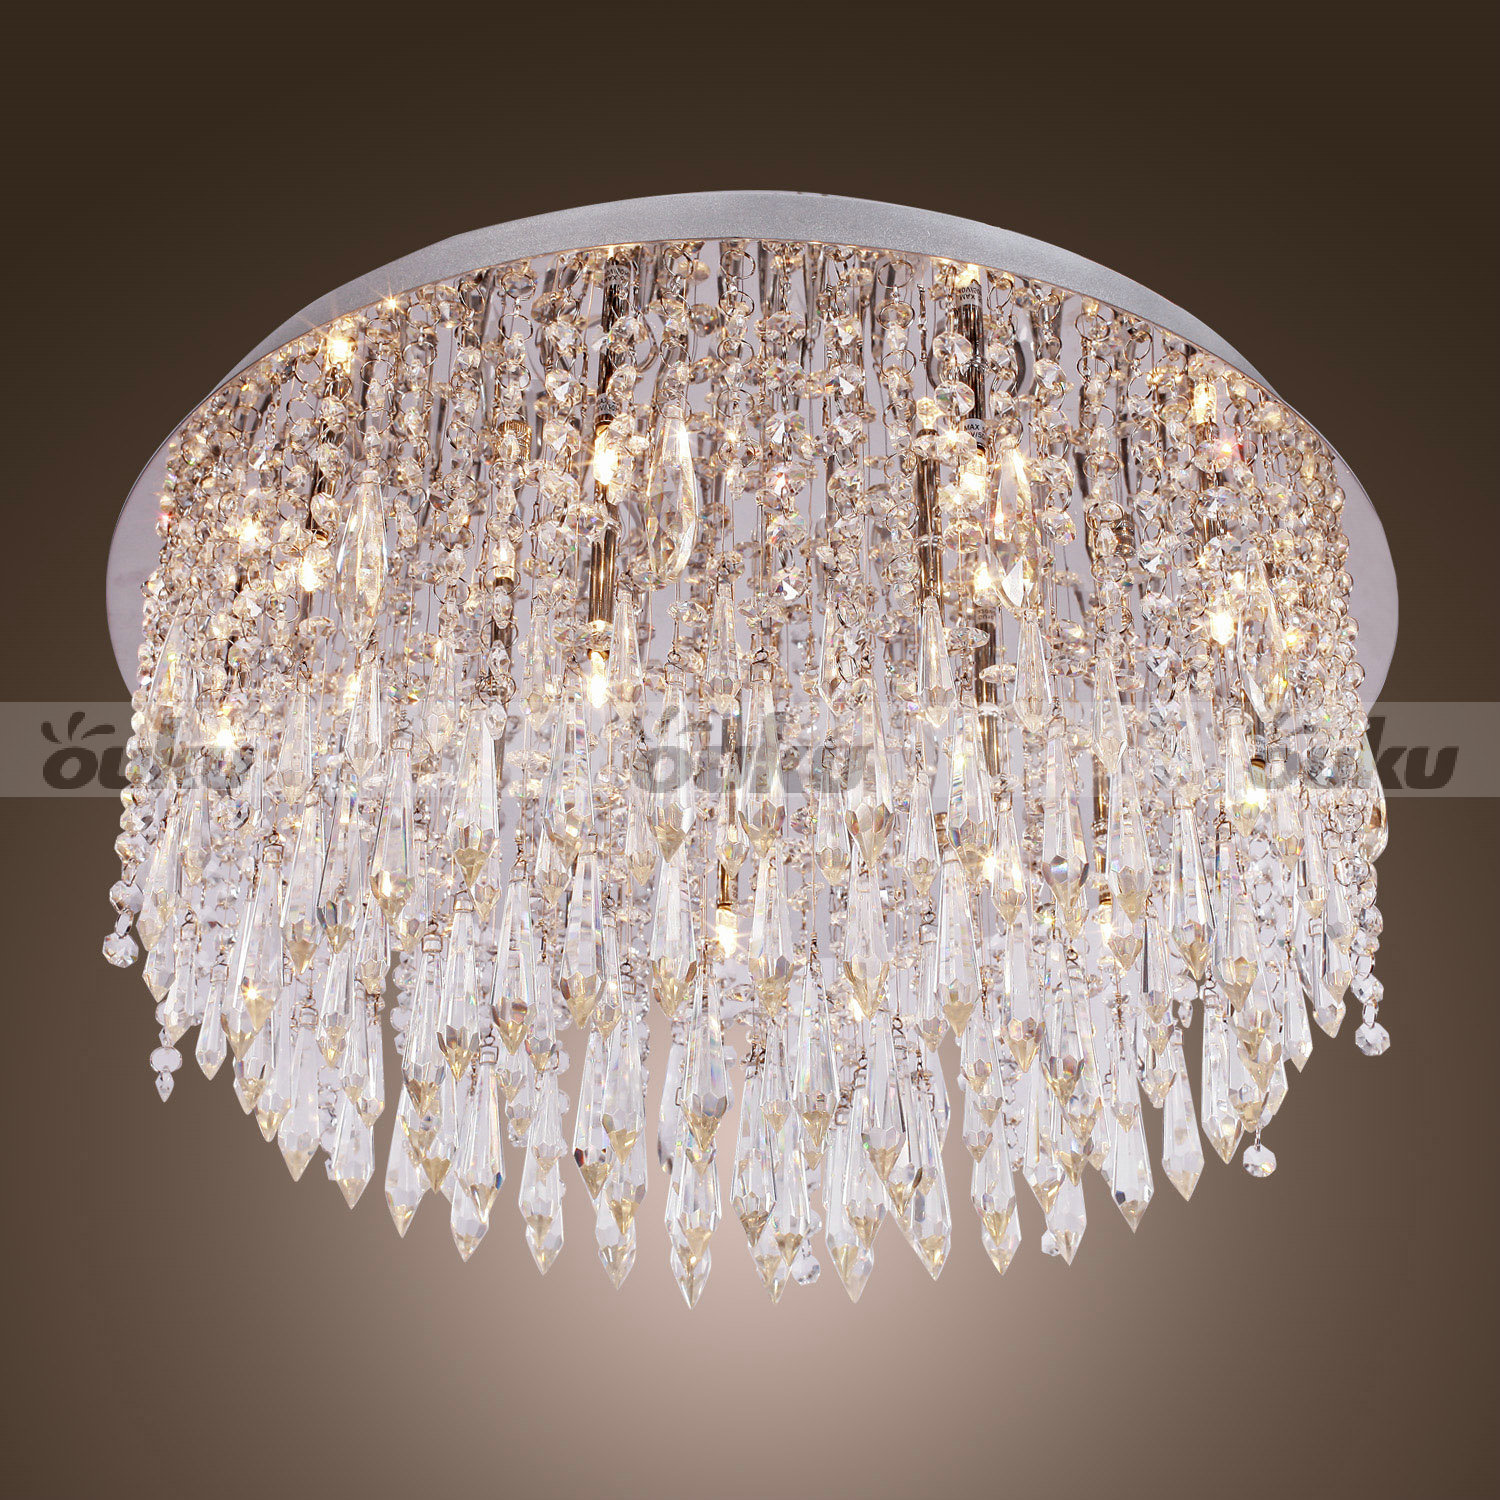 Modern Beaded Ceiling Chandelier Lighting Crystal Lamp Light – Modern Crystal Chandeliers